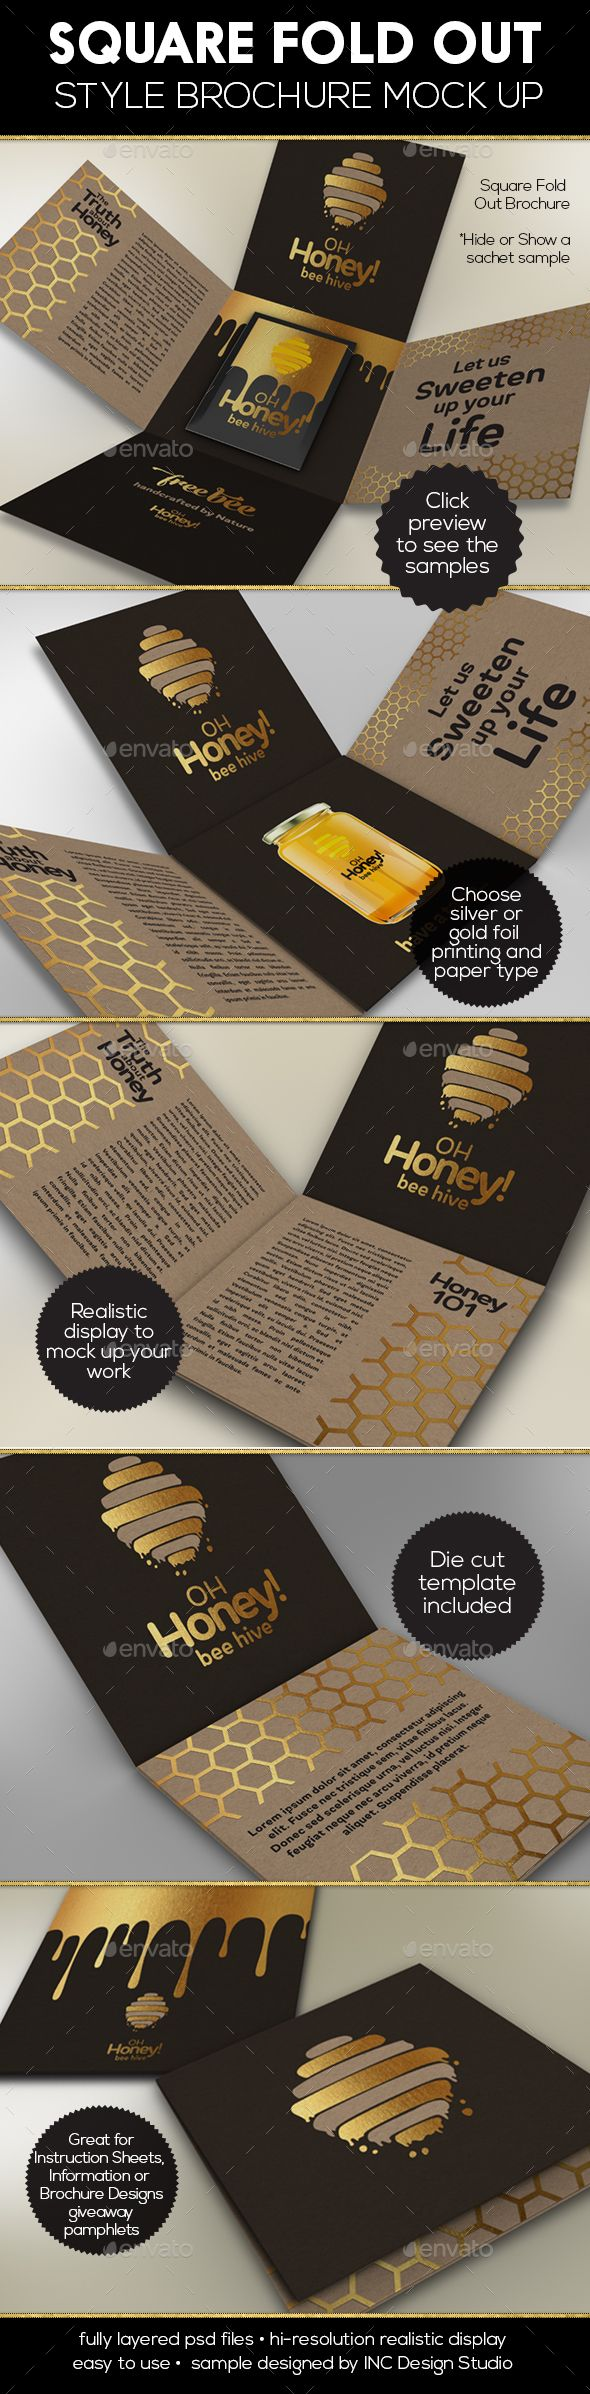 Square Fold Out Style Brochure Brochures Photoshop And Squares - Fold out brochure template